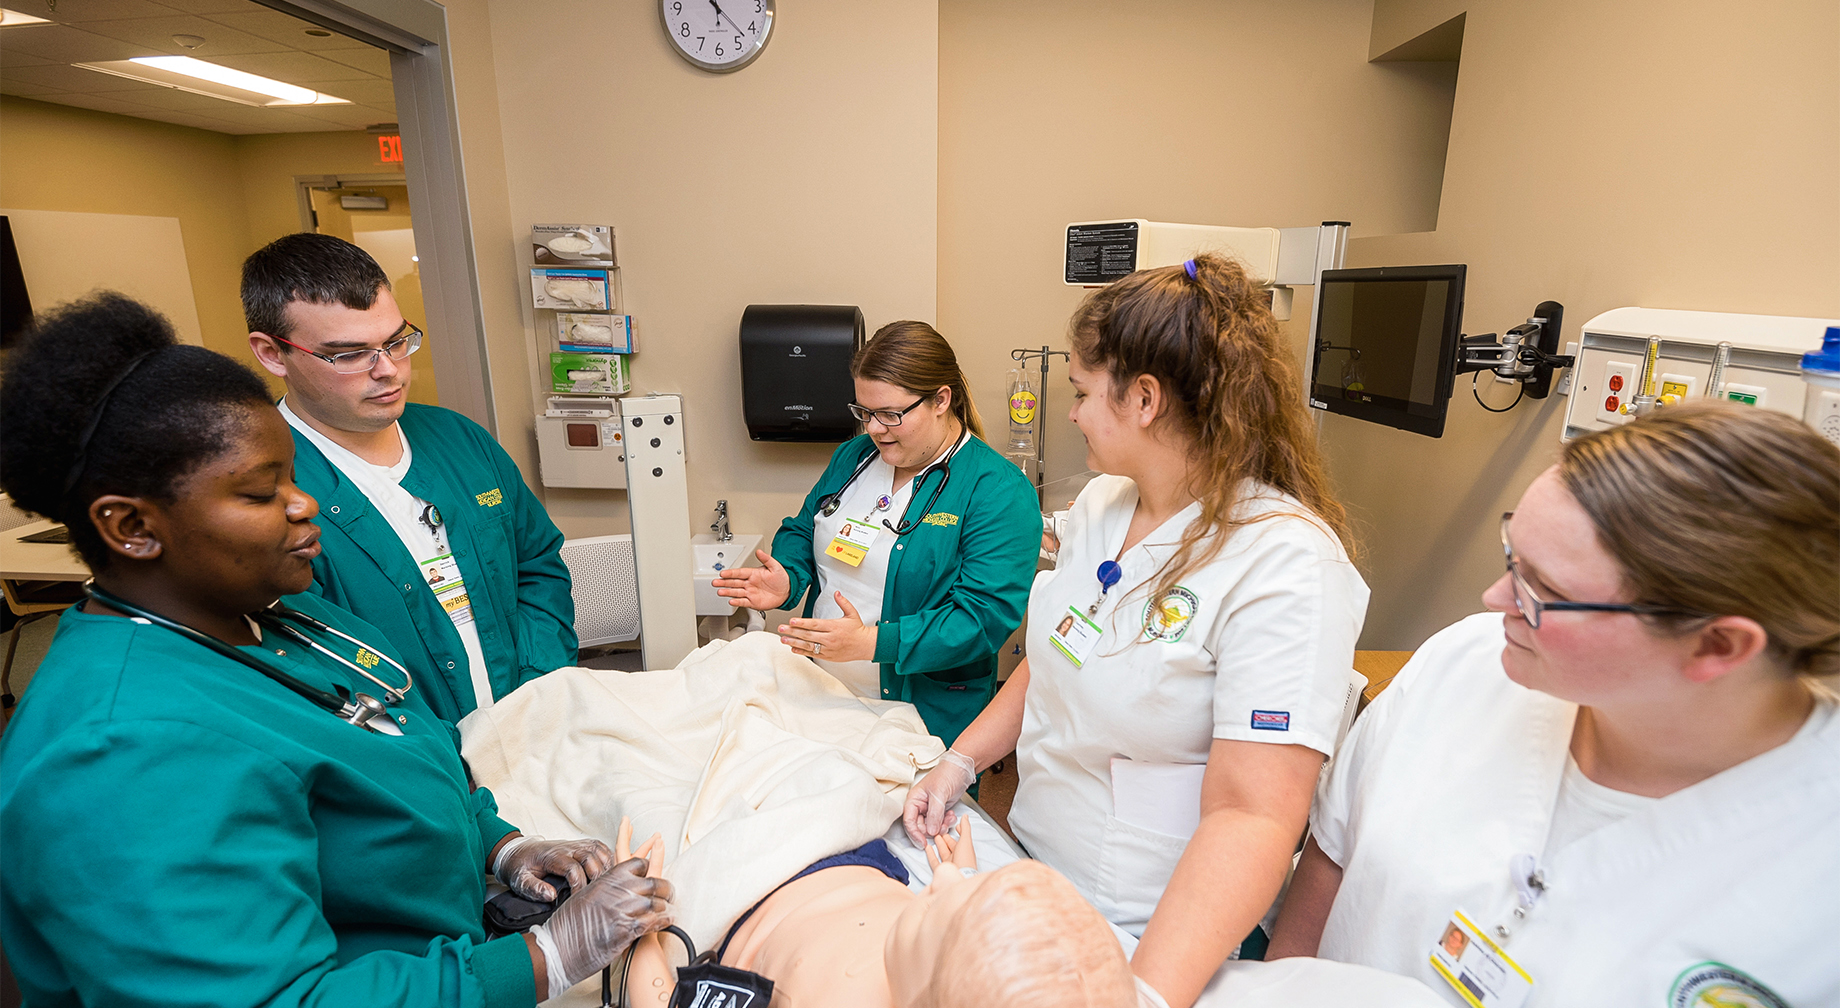 Nursing students in the simulation lab.